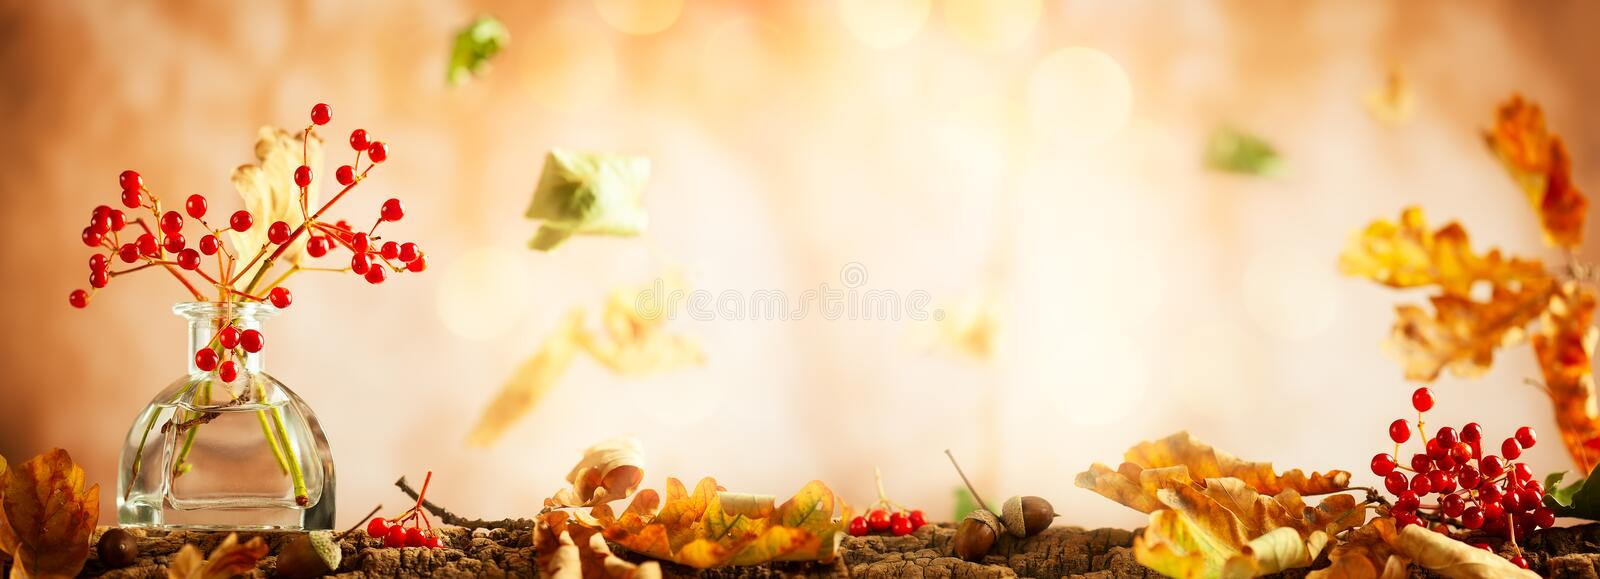 Beautiful autumn red berries and oak leaves in glass bottle. Autumn still life with royalty free stock photography